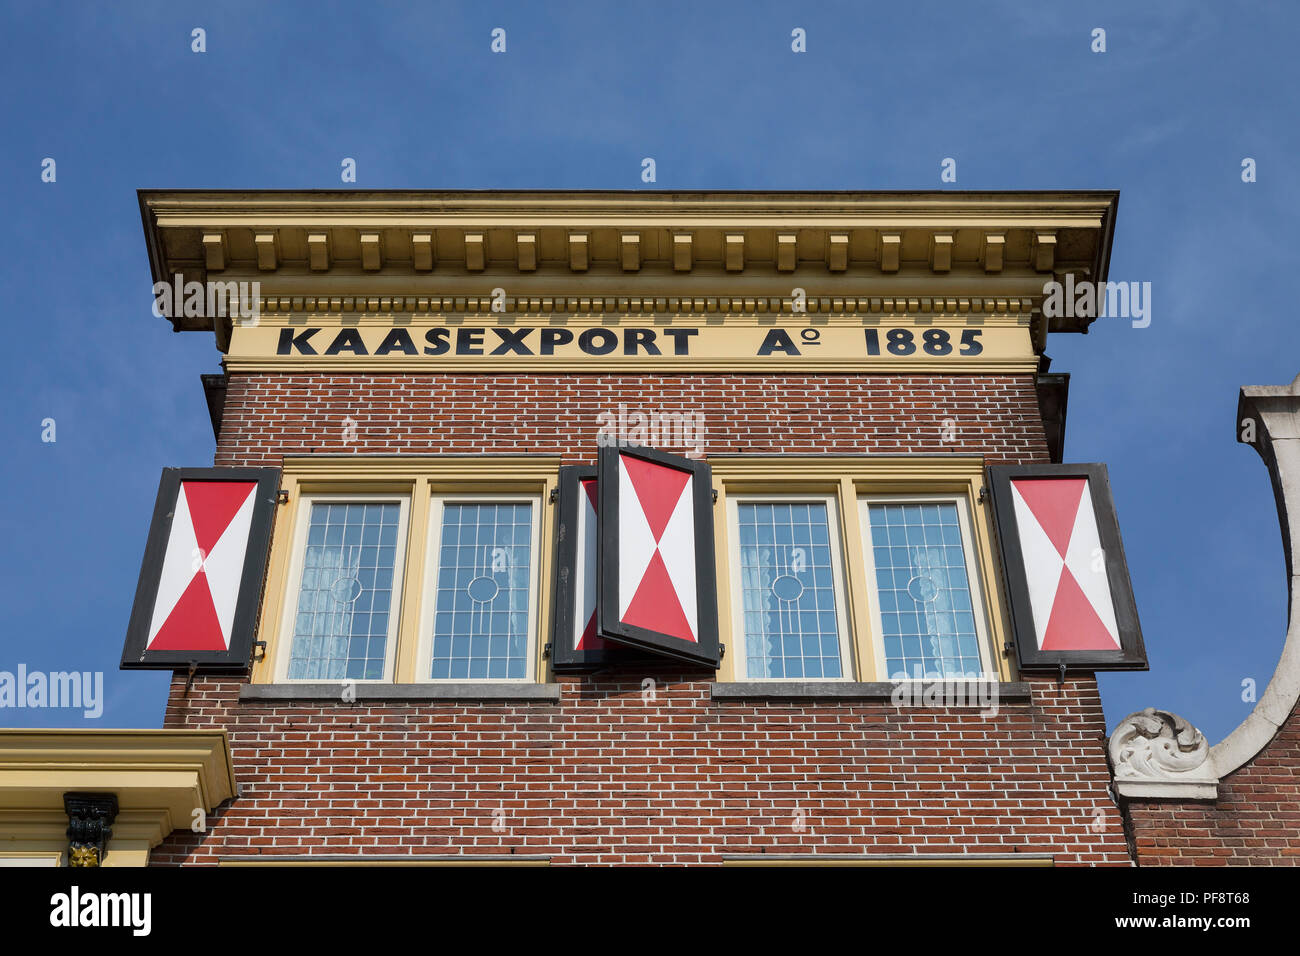 Alkmaar, Netherlands - July 20, 2018: Facade of a building with the sign cheese export and is built in 1885 near the cheese market - Stock Image